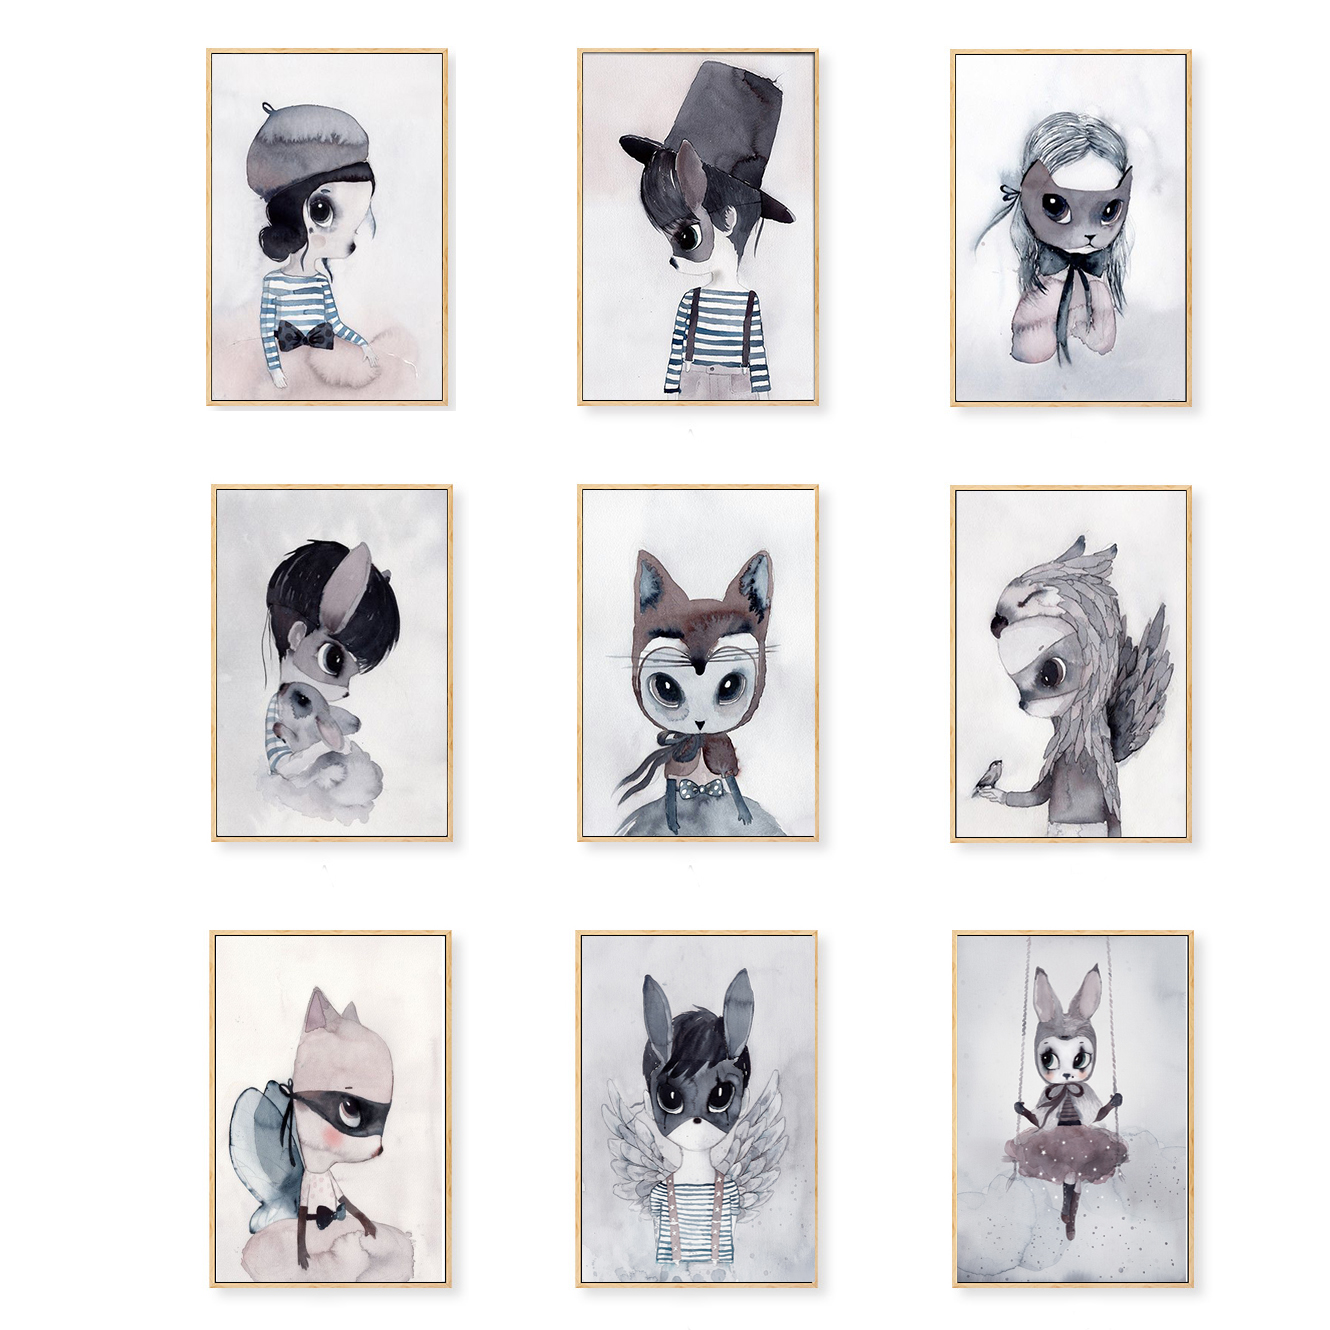 Poster Print Nordic Style Kids Decoration Wall Art Canvas Painting Cute Cartoon Nursery Rabbit Wall Pictures Girl's Room Decor